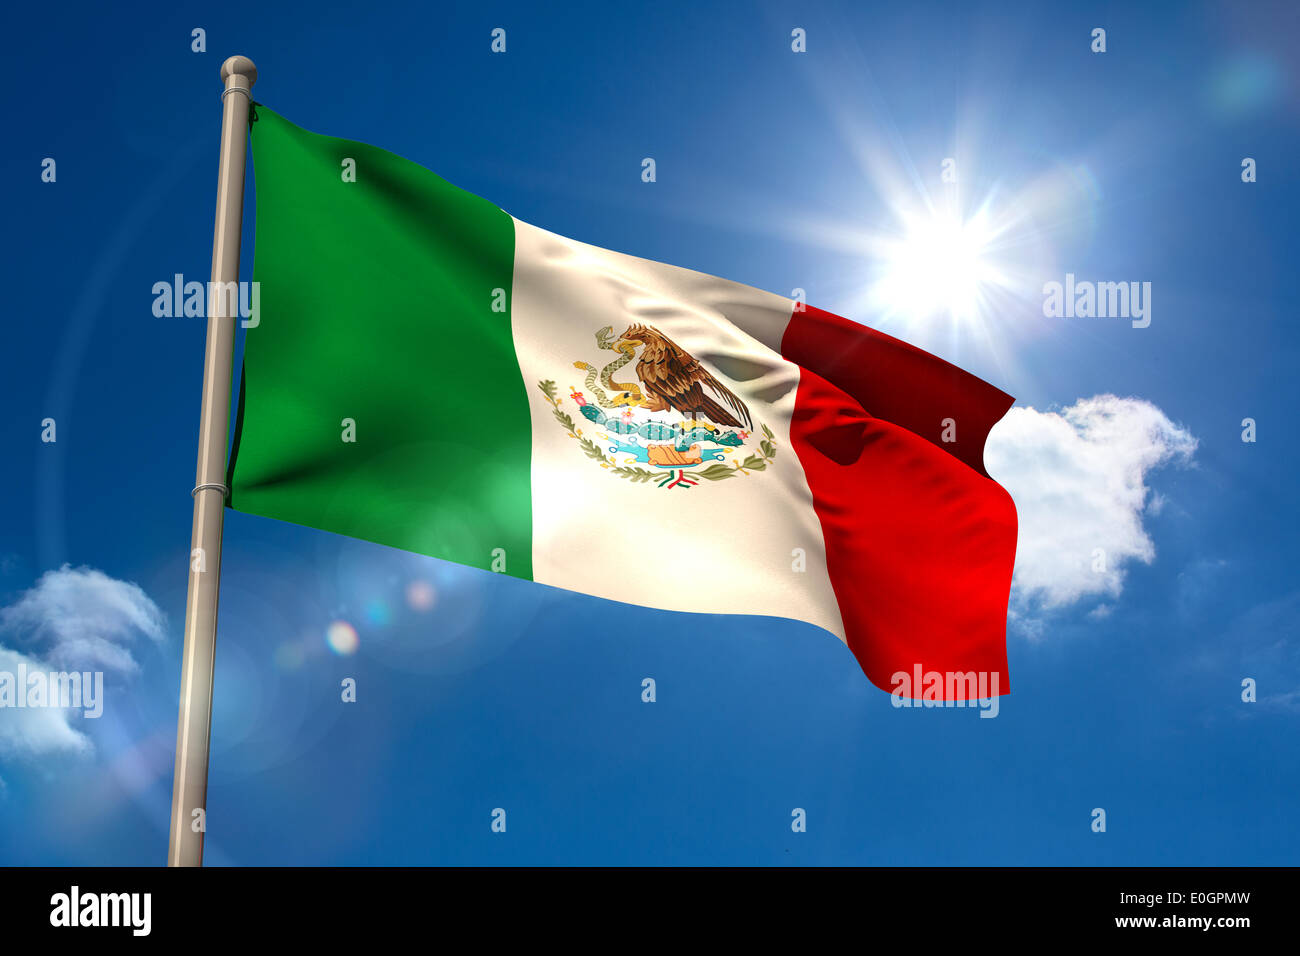 Mexico national flag on flagpole - Stock Image